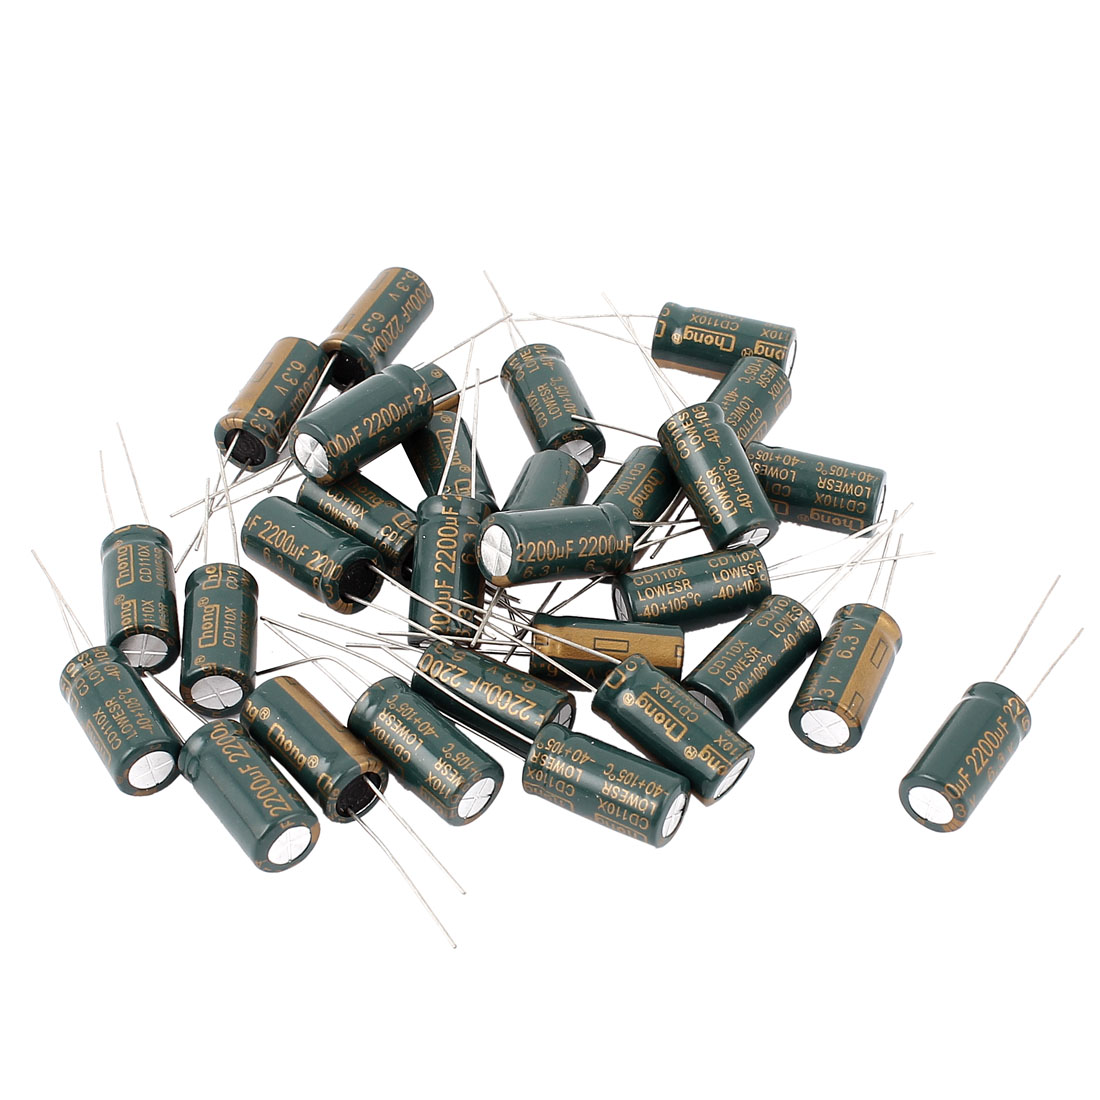 30pcs 10 x 20mm Cylindrical Radial Lead Electrolytic Capacitor 105C 2200uF 6.3V